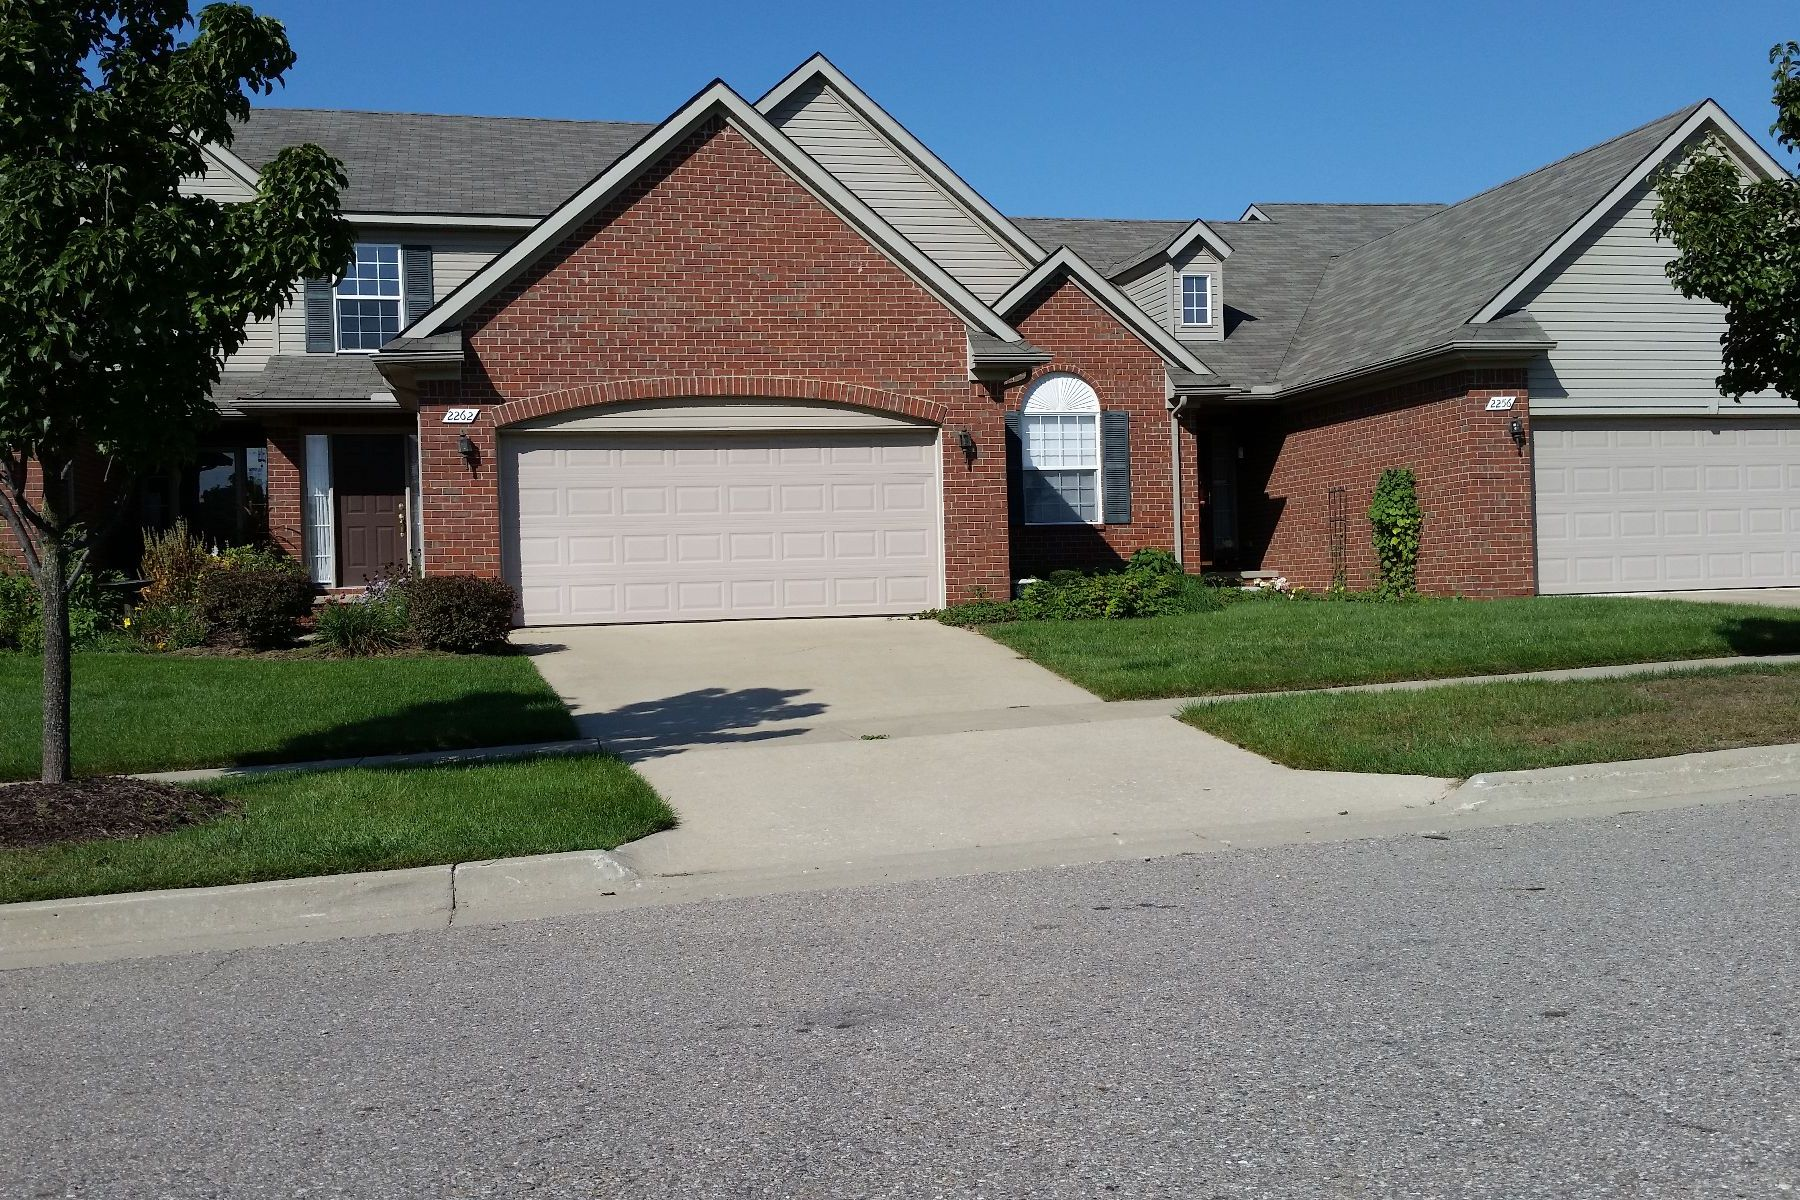 Condominium for Sale at Ypsilanti Township 2739 Bluewater St Ypsilanti, Michigan 48198 United States